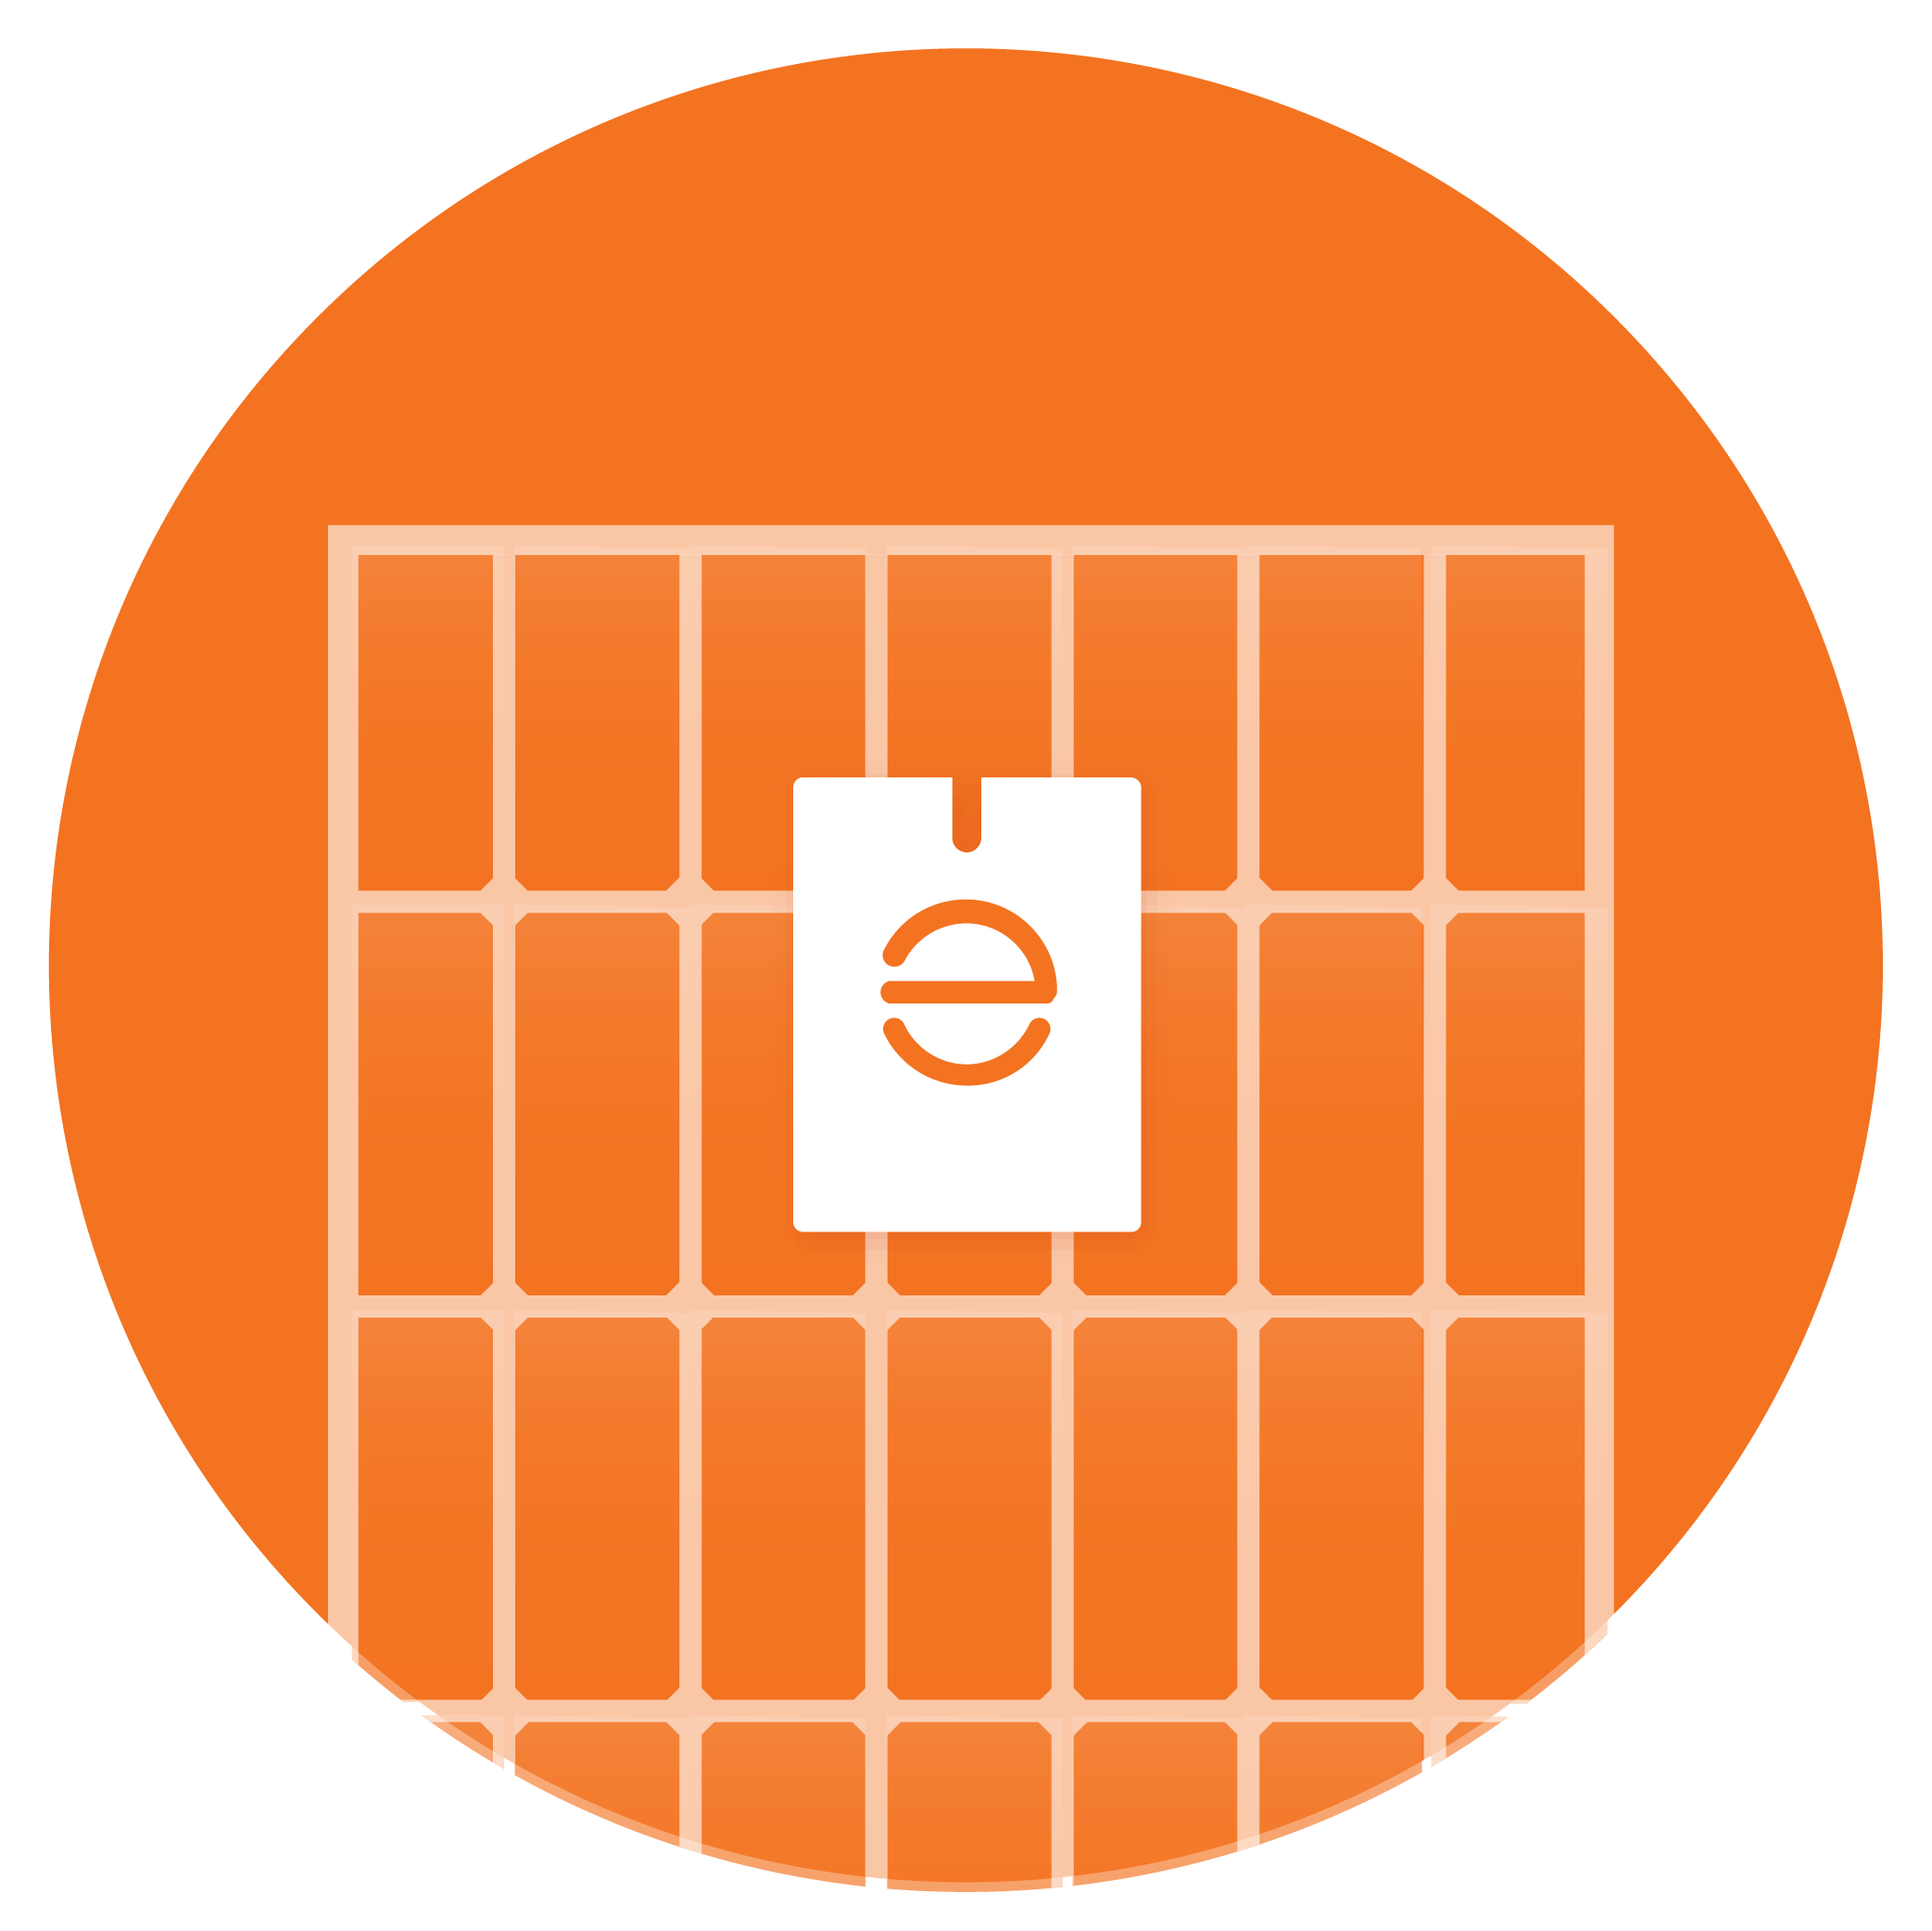 ac-module-icon-outline-01.png